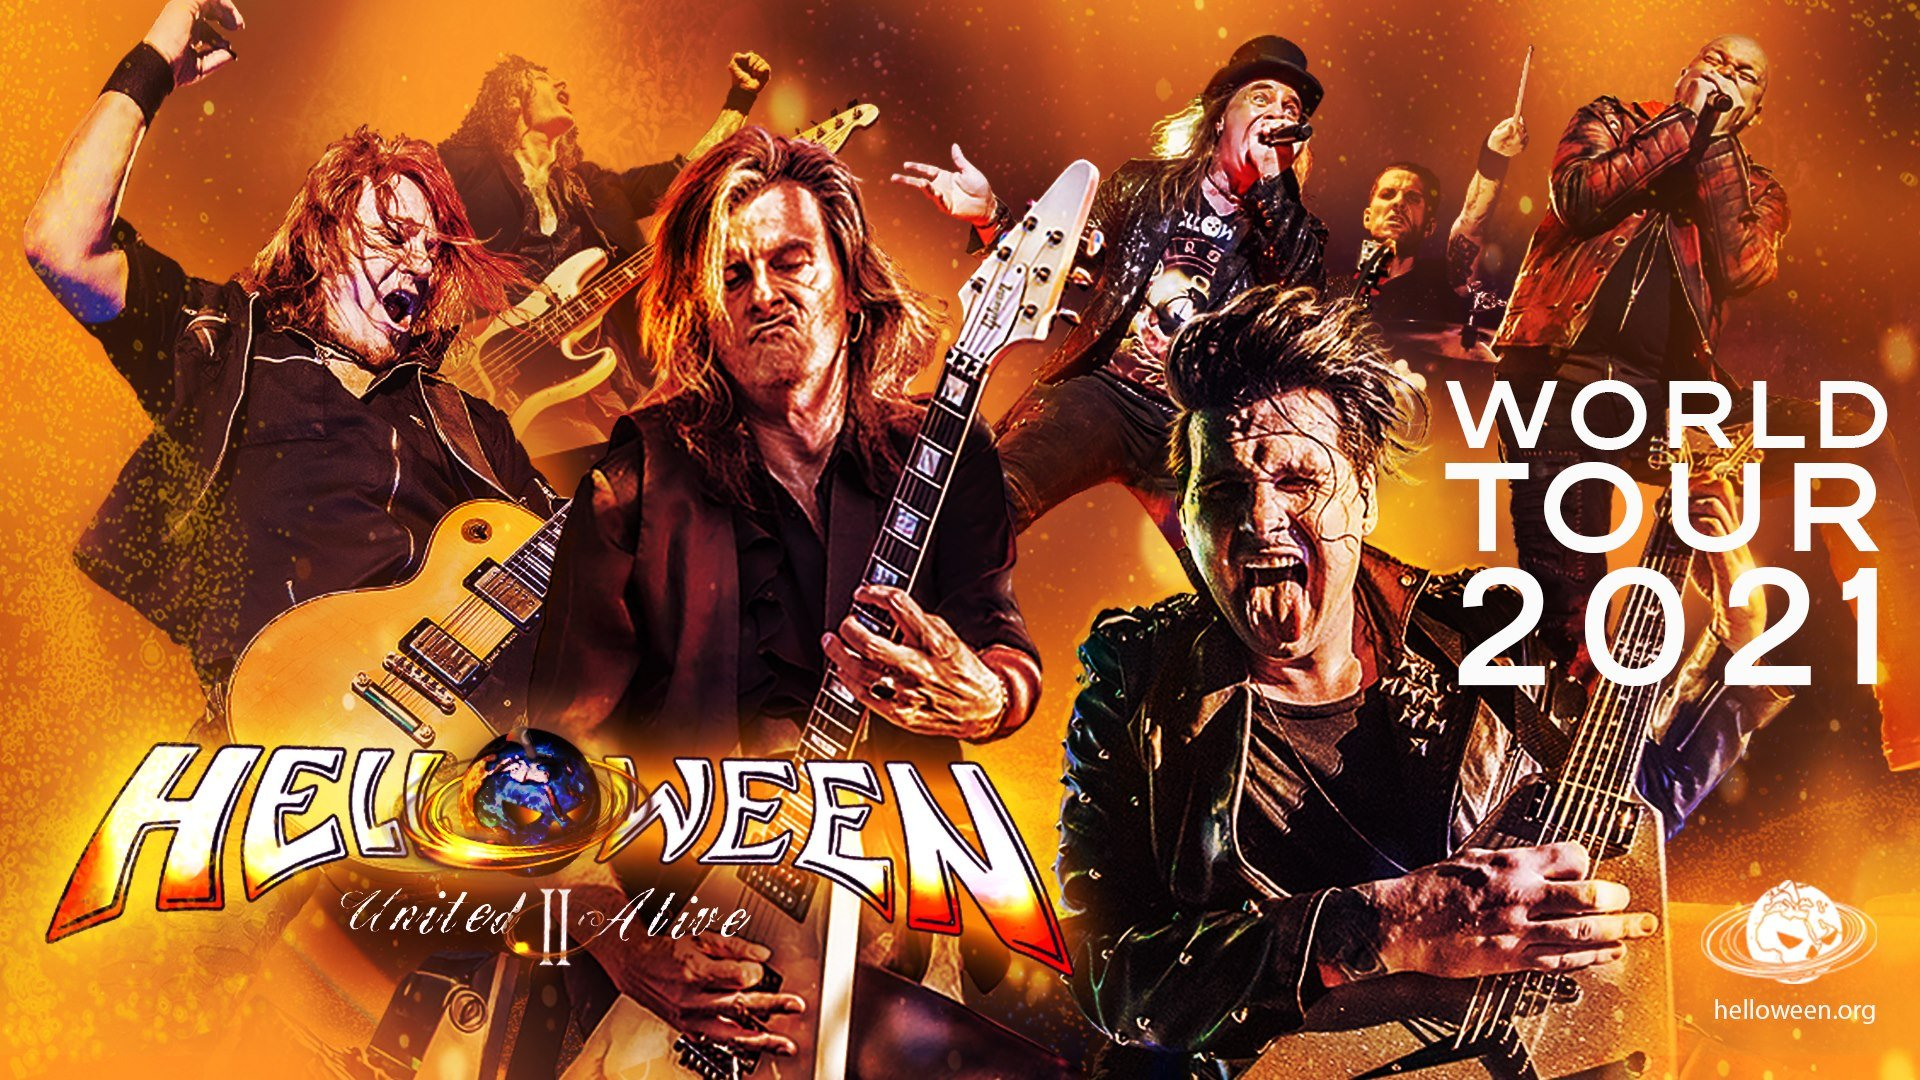 Helloween United Alive World Tour Part II, Lorenzini District Milano